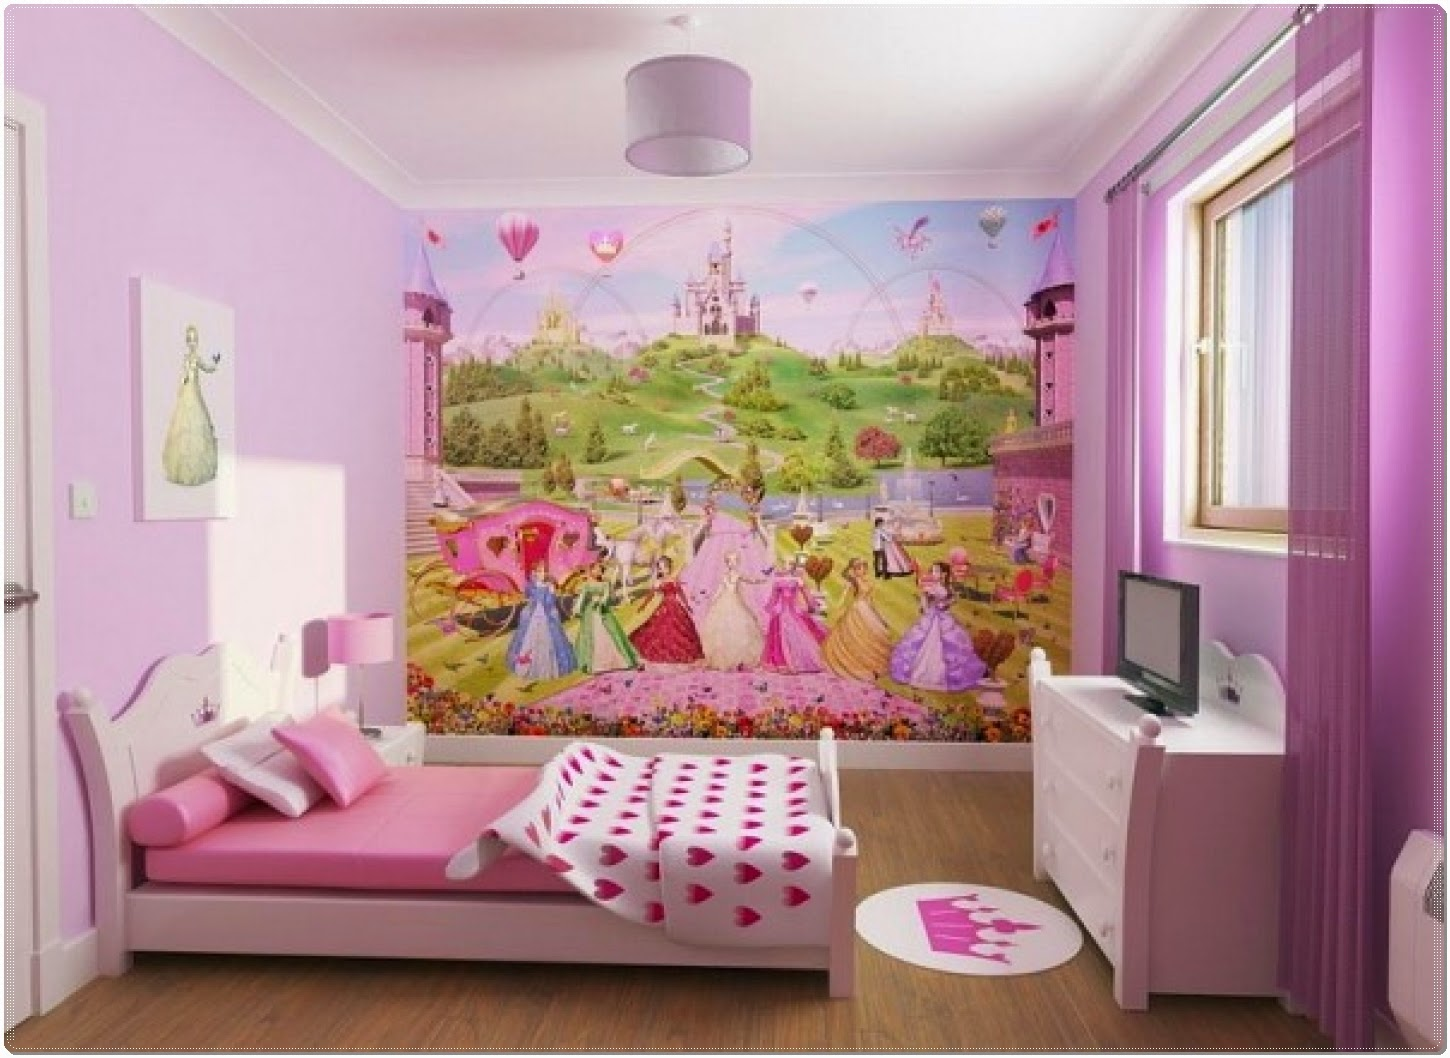 Kids Bedroom: The Best Idea Of Little Girl Room With Princess ...